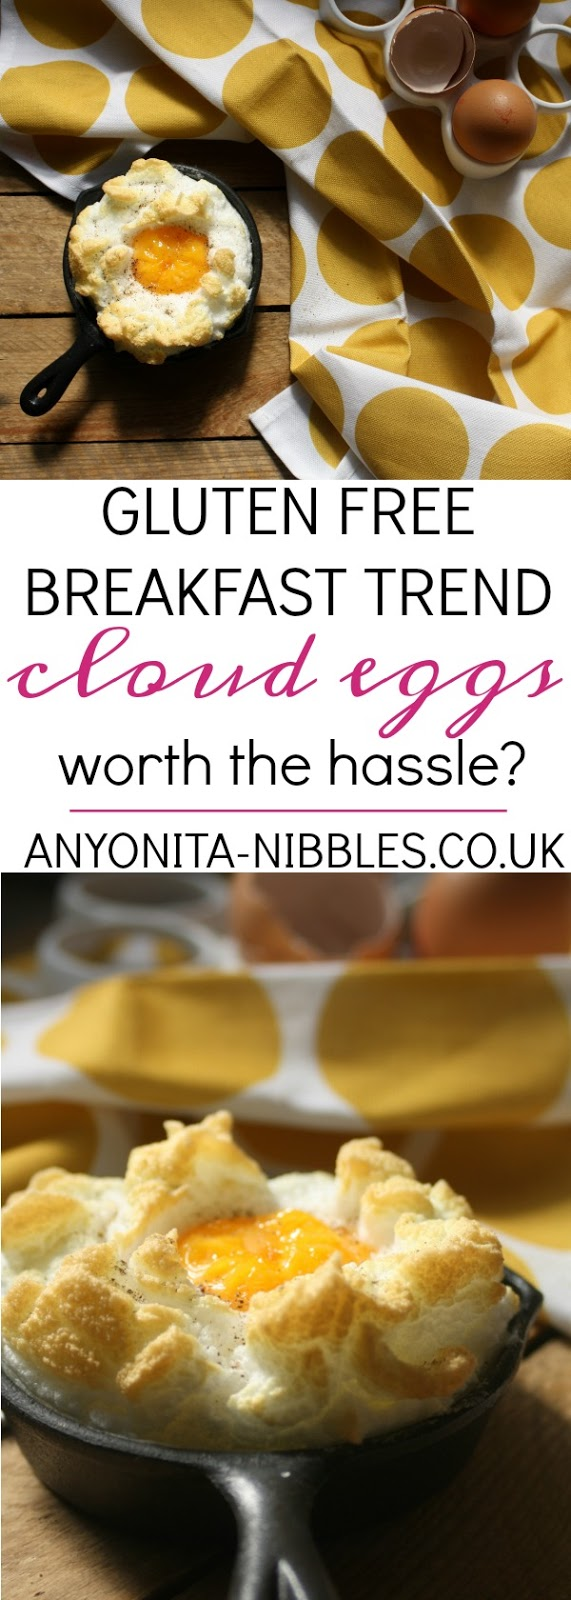 #cloudeggs the breakfast trend from Anyonita Nibbles